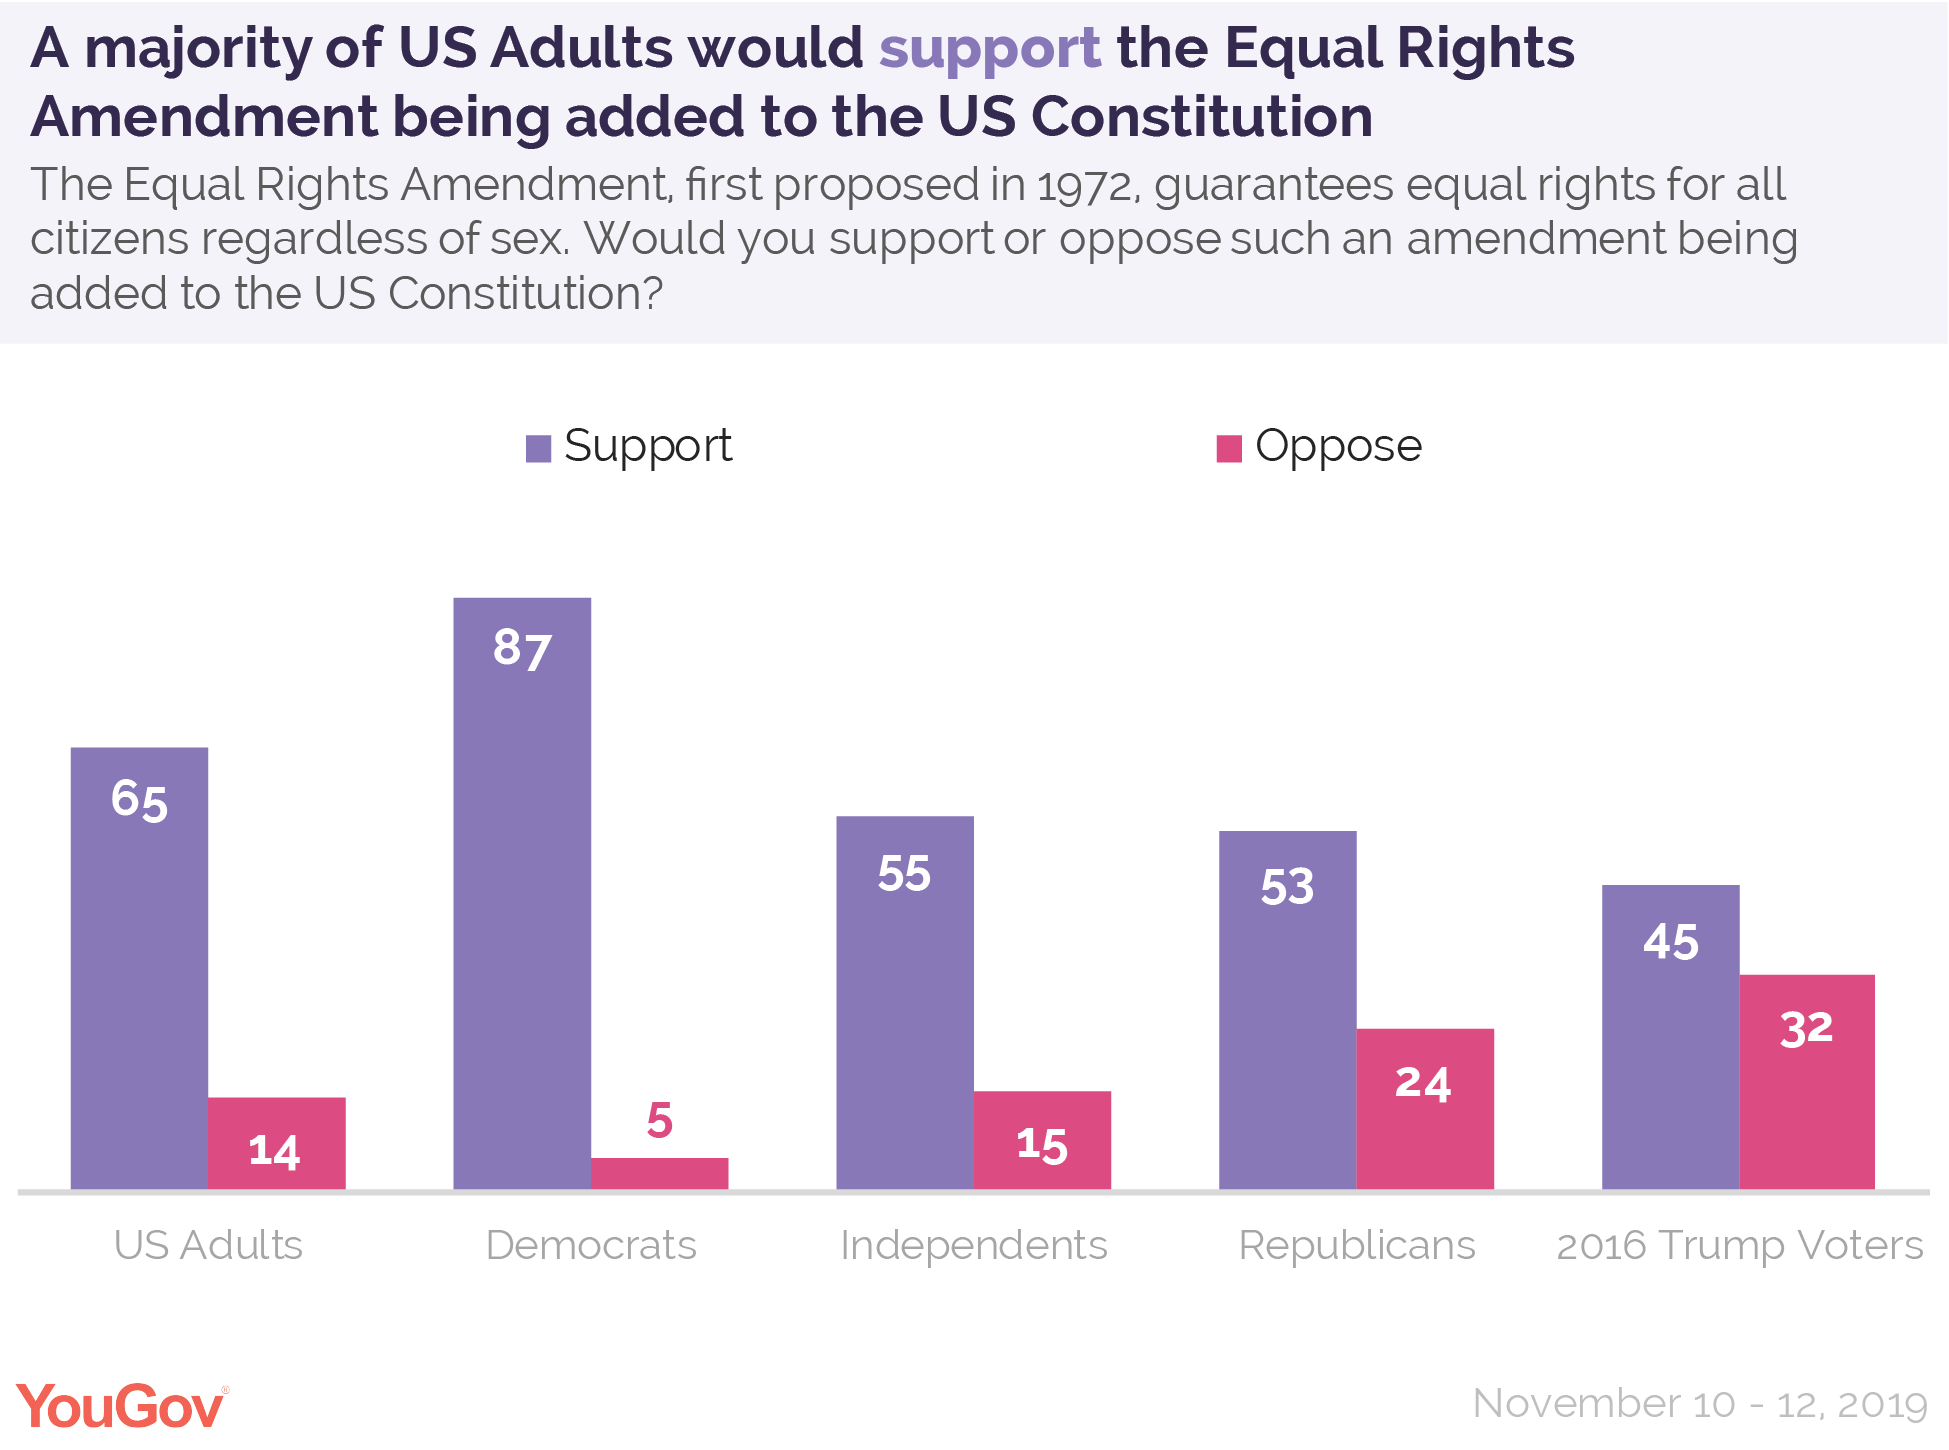 A majority of US Adults would support the Equal Rights Amendment being added to the US Constitution